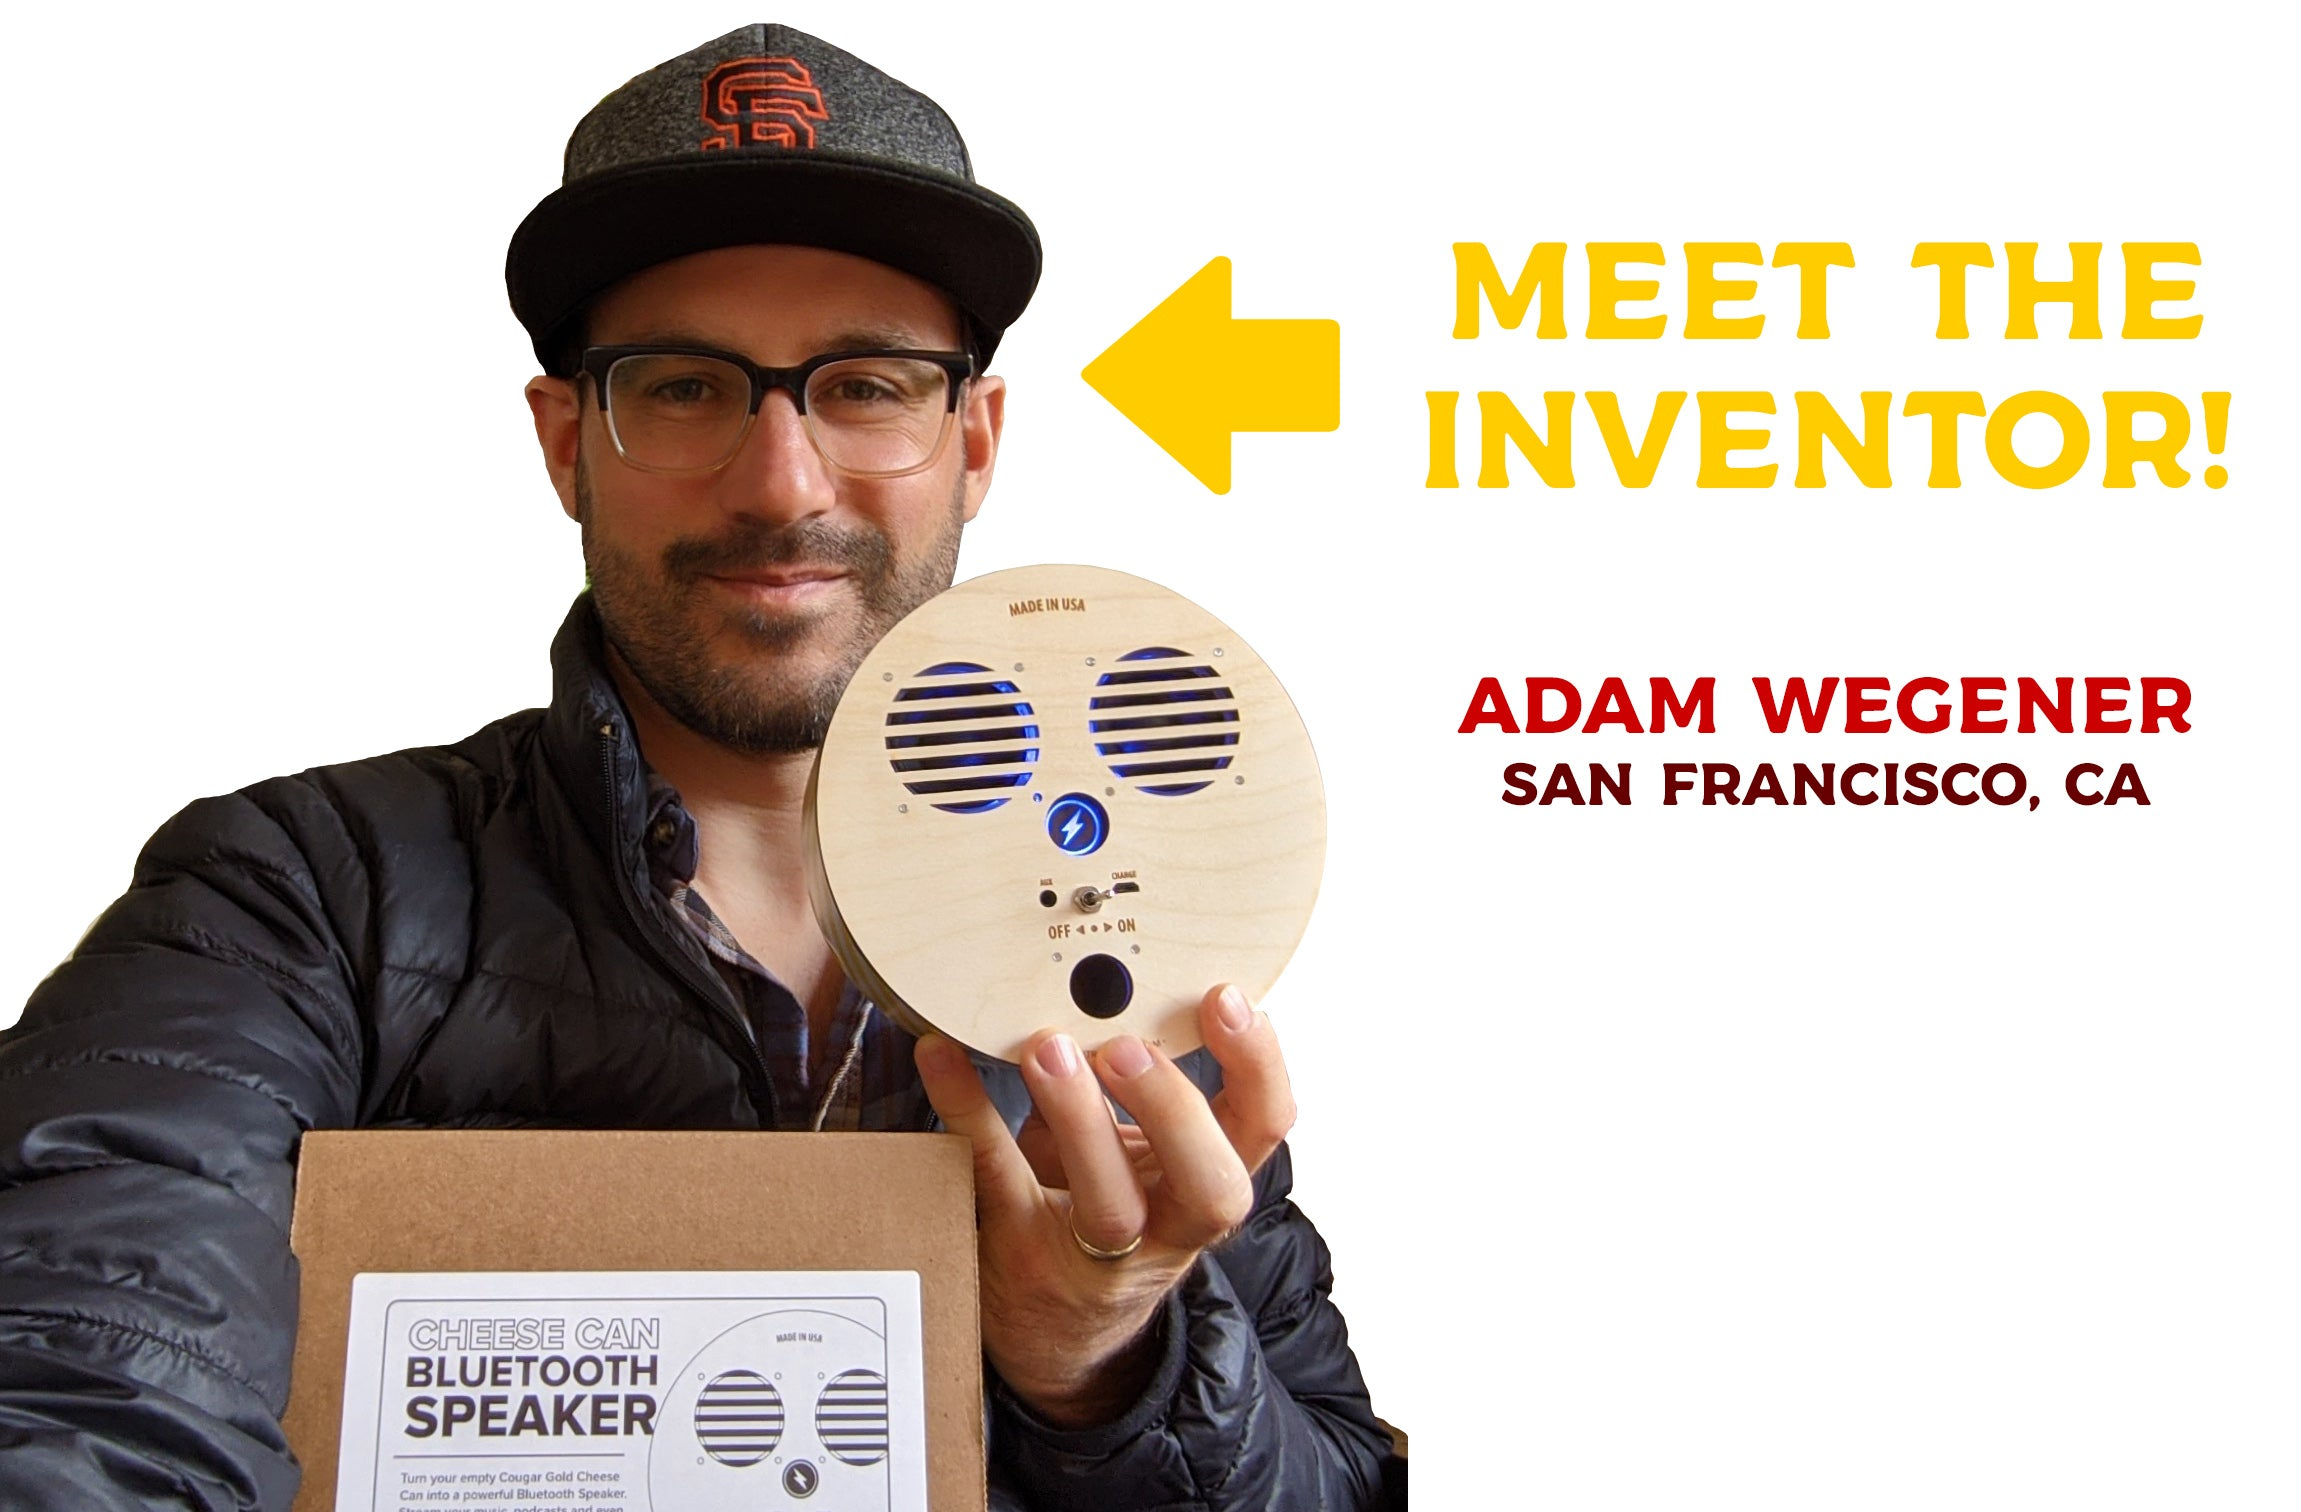 Meet the inventor, Adam Wegener